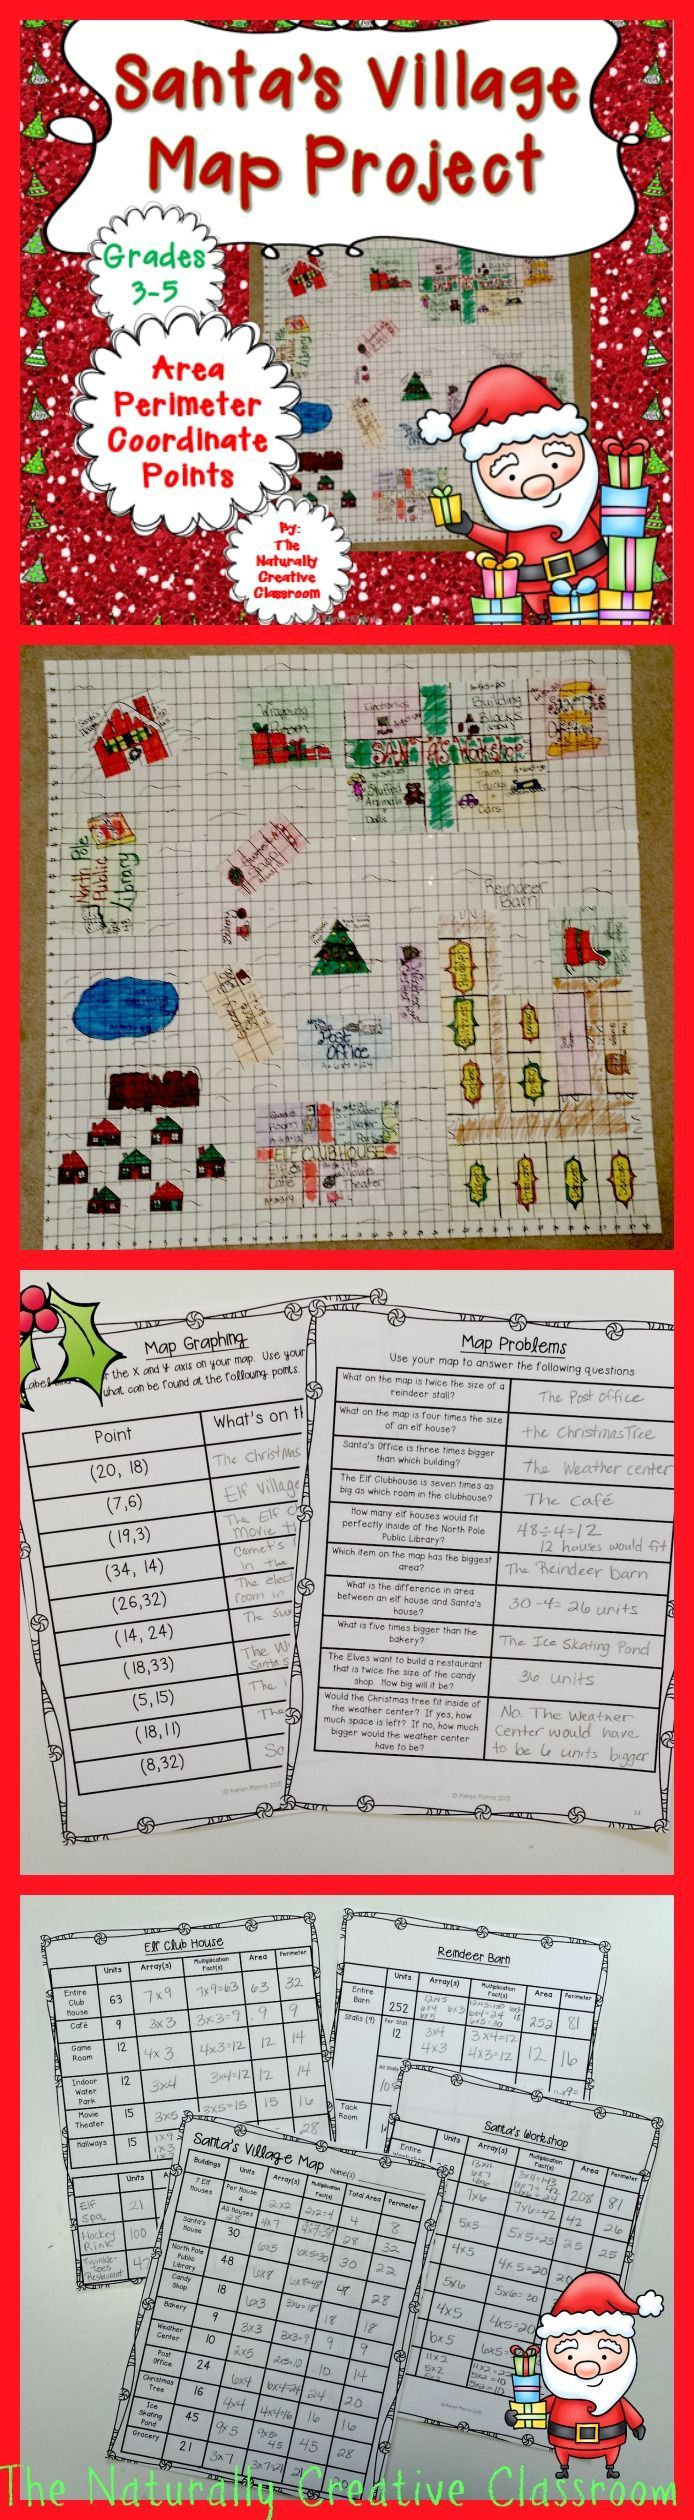 This Christmas Map Project will have your students begging for more math time!  Have students create their own map of Santa's Village at the North Pole!  They will be using area, perimeter, multiplication, arrays, factor pairs, graphing and MORE! You can either give them all the units for each item on the map or have them decide the size of each item.  Each map will be a unique creation.  This project can easily be differentiated to fit all the needs in your classroom!